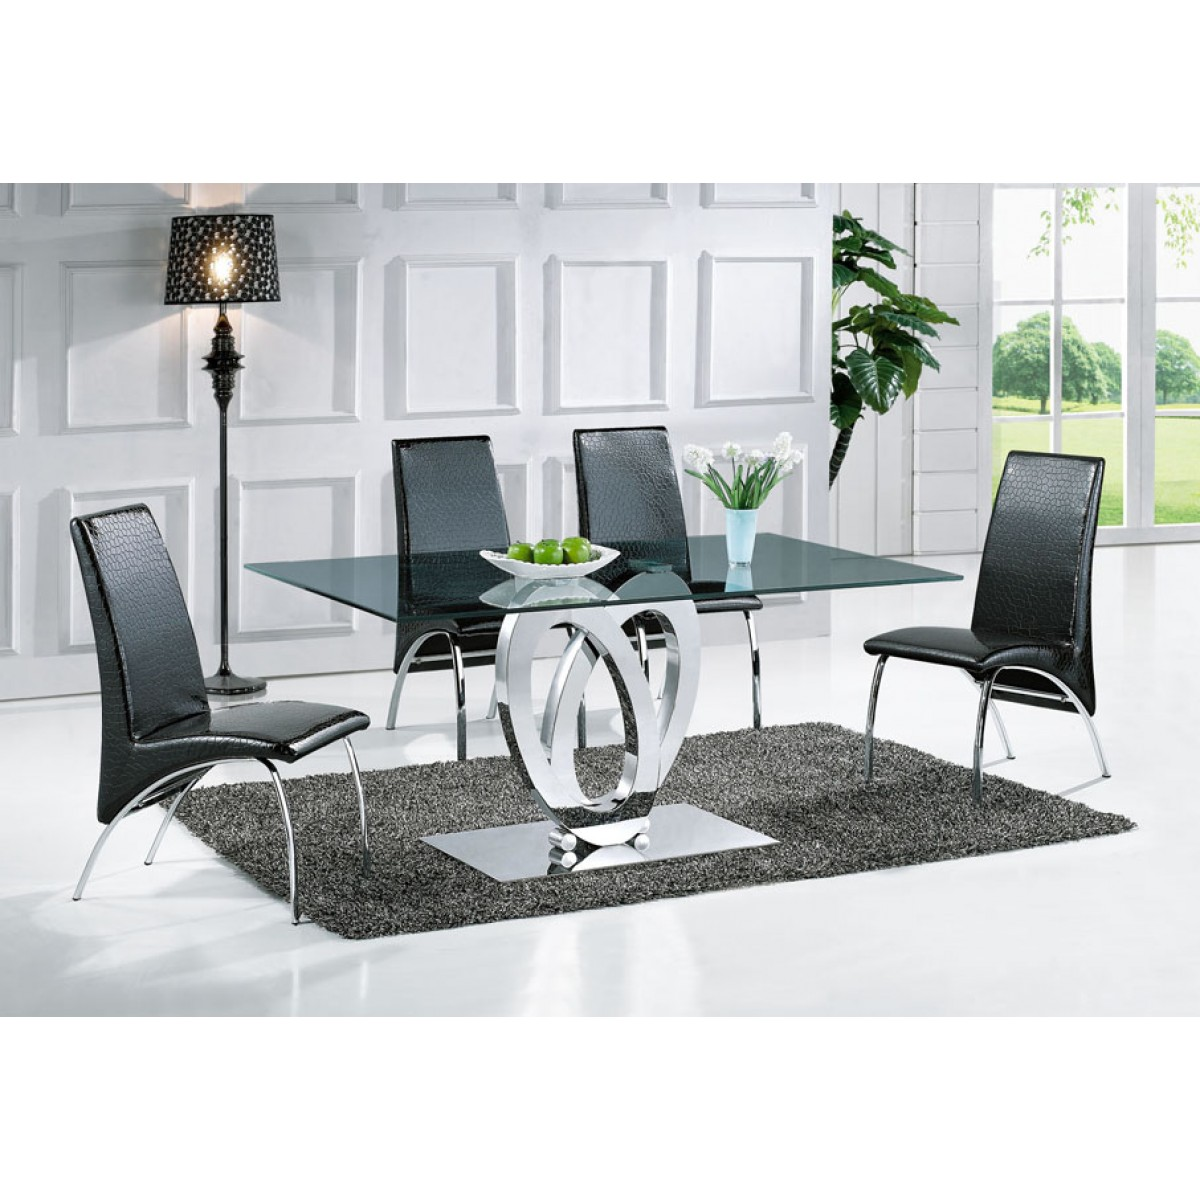 Table de salle manger design ellipse taille au choix for Table manger design